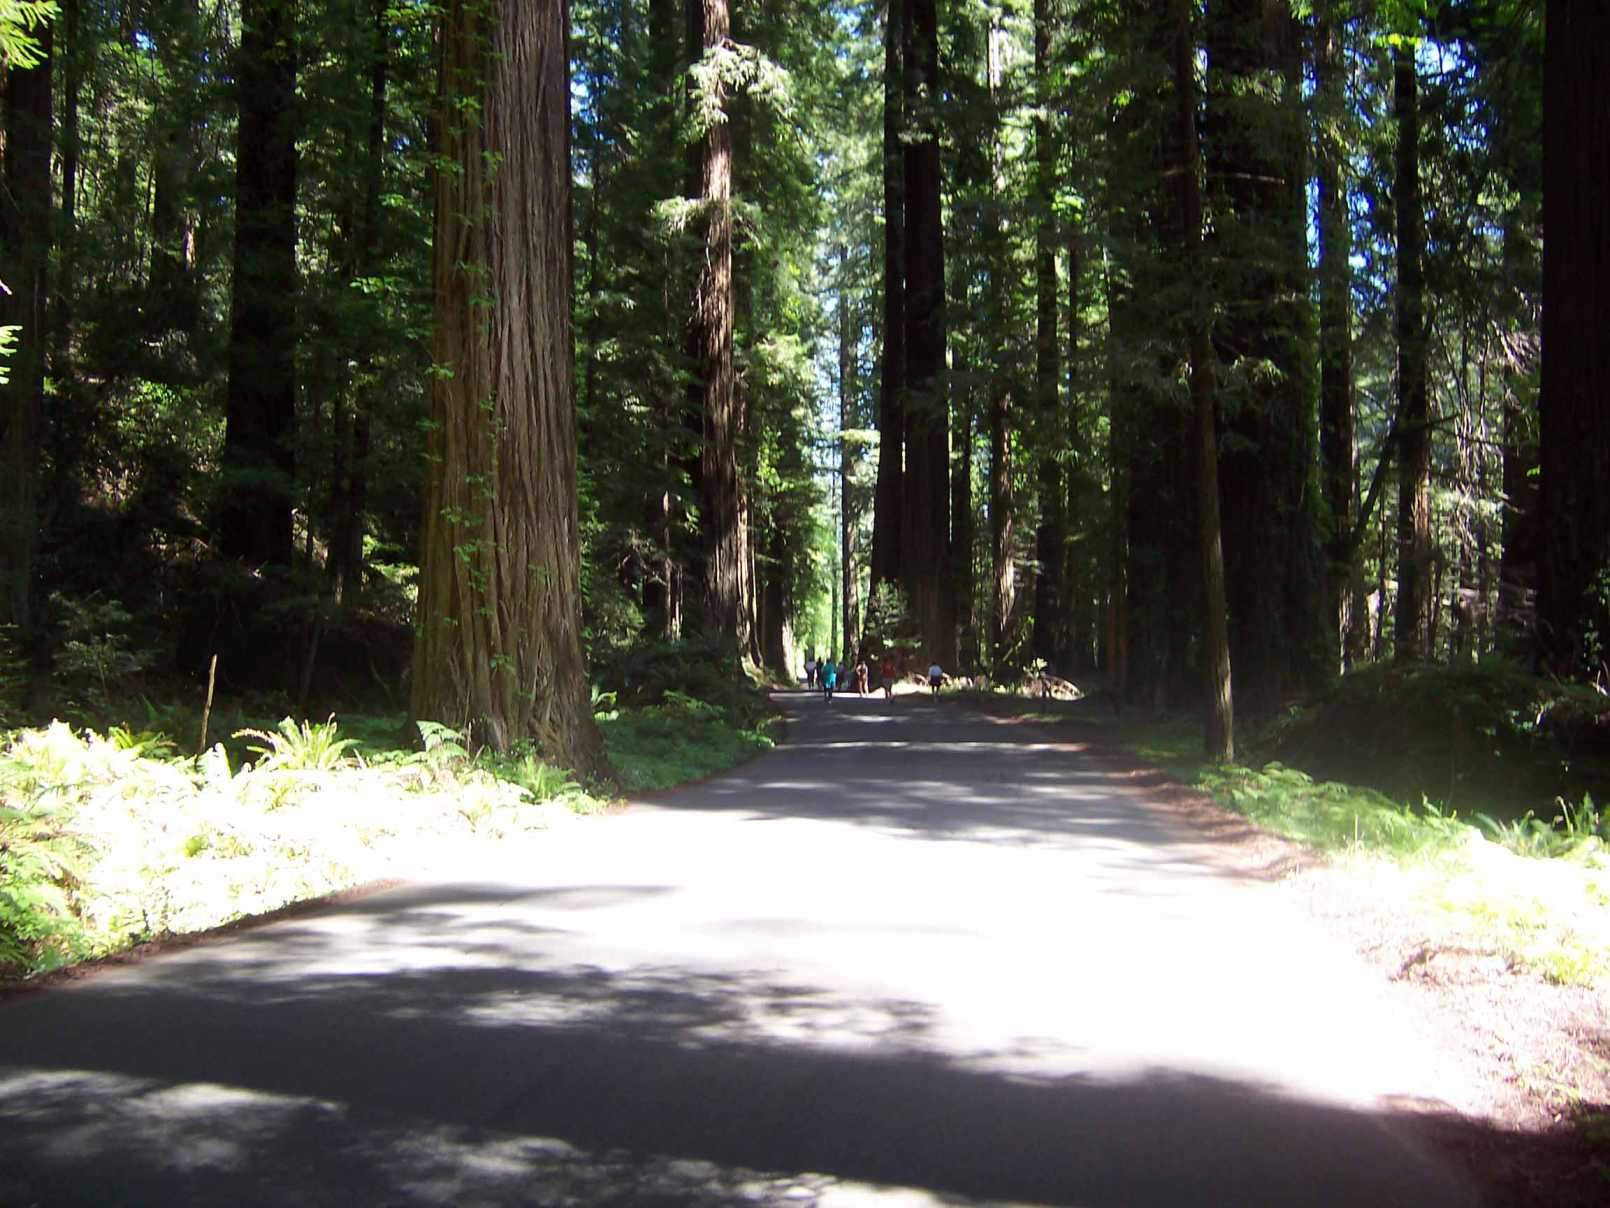 Why they call if Avenue of the Giants